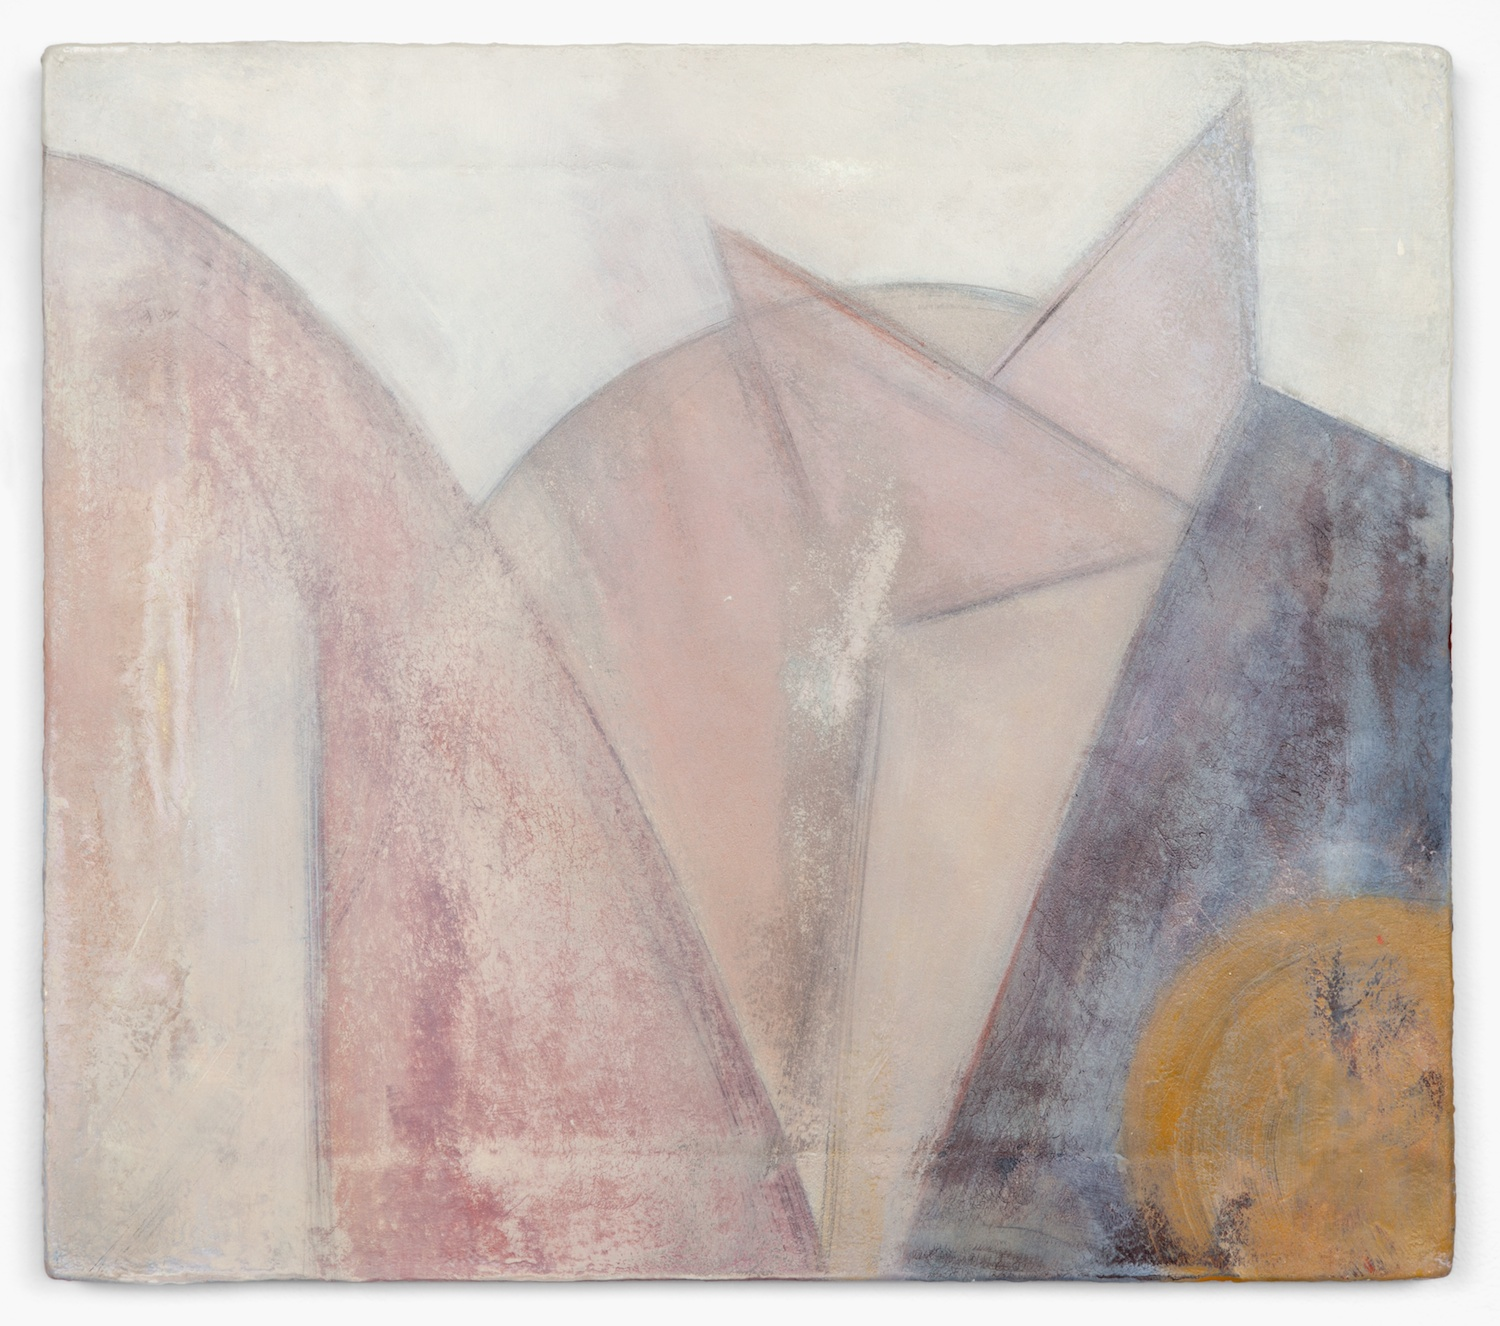 Lily Ludlow  Margaret  2012 Acrylic, graphite, and gesso on canvas 14 ¼h x 16w in LL002